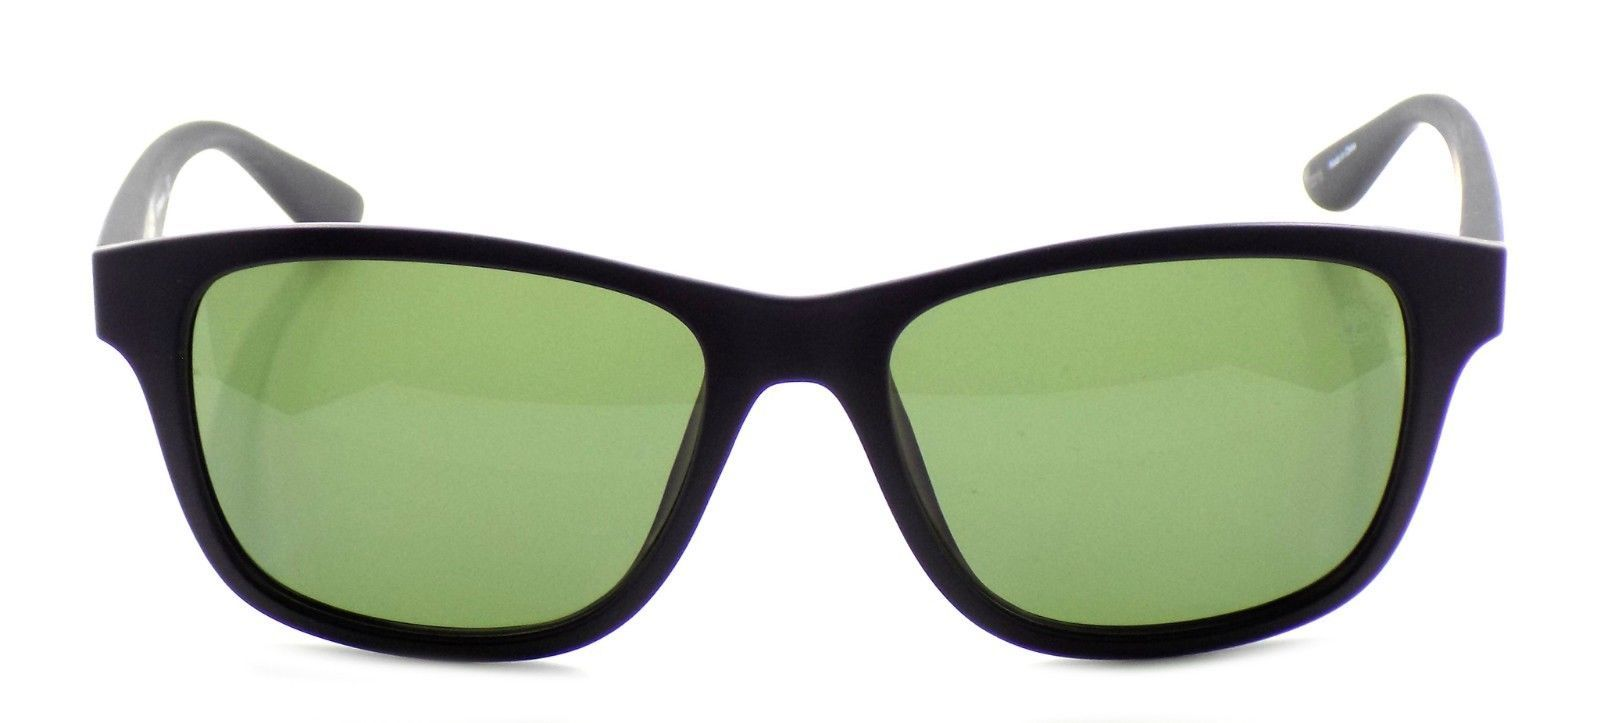 TIMBERLAND TB9089 02R Polarized Sunglasses BLACK 55-17-140 Green Lens + CASE